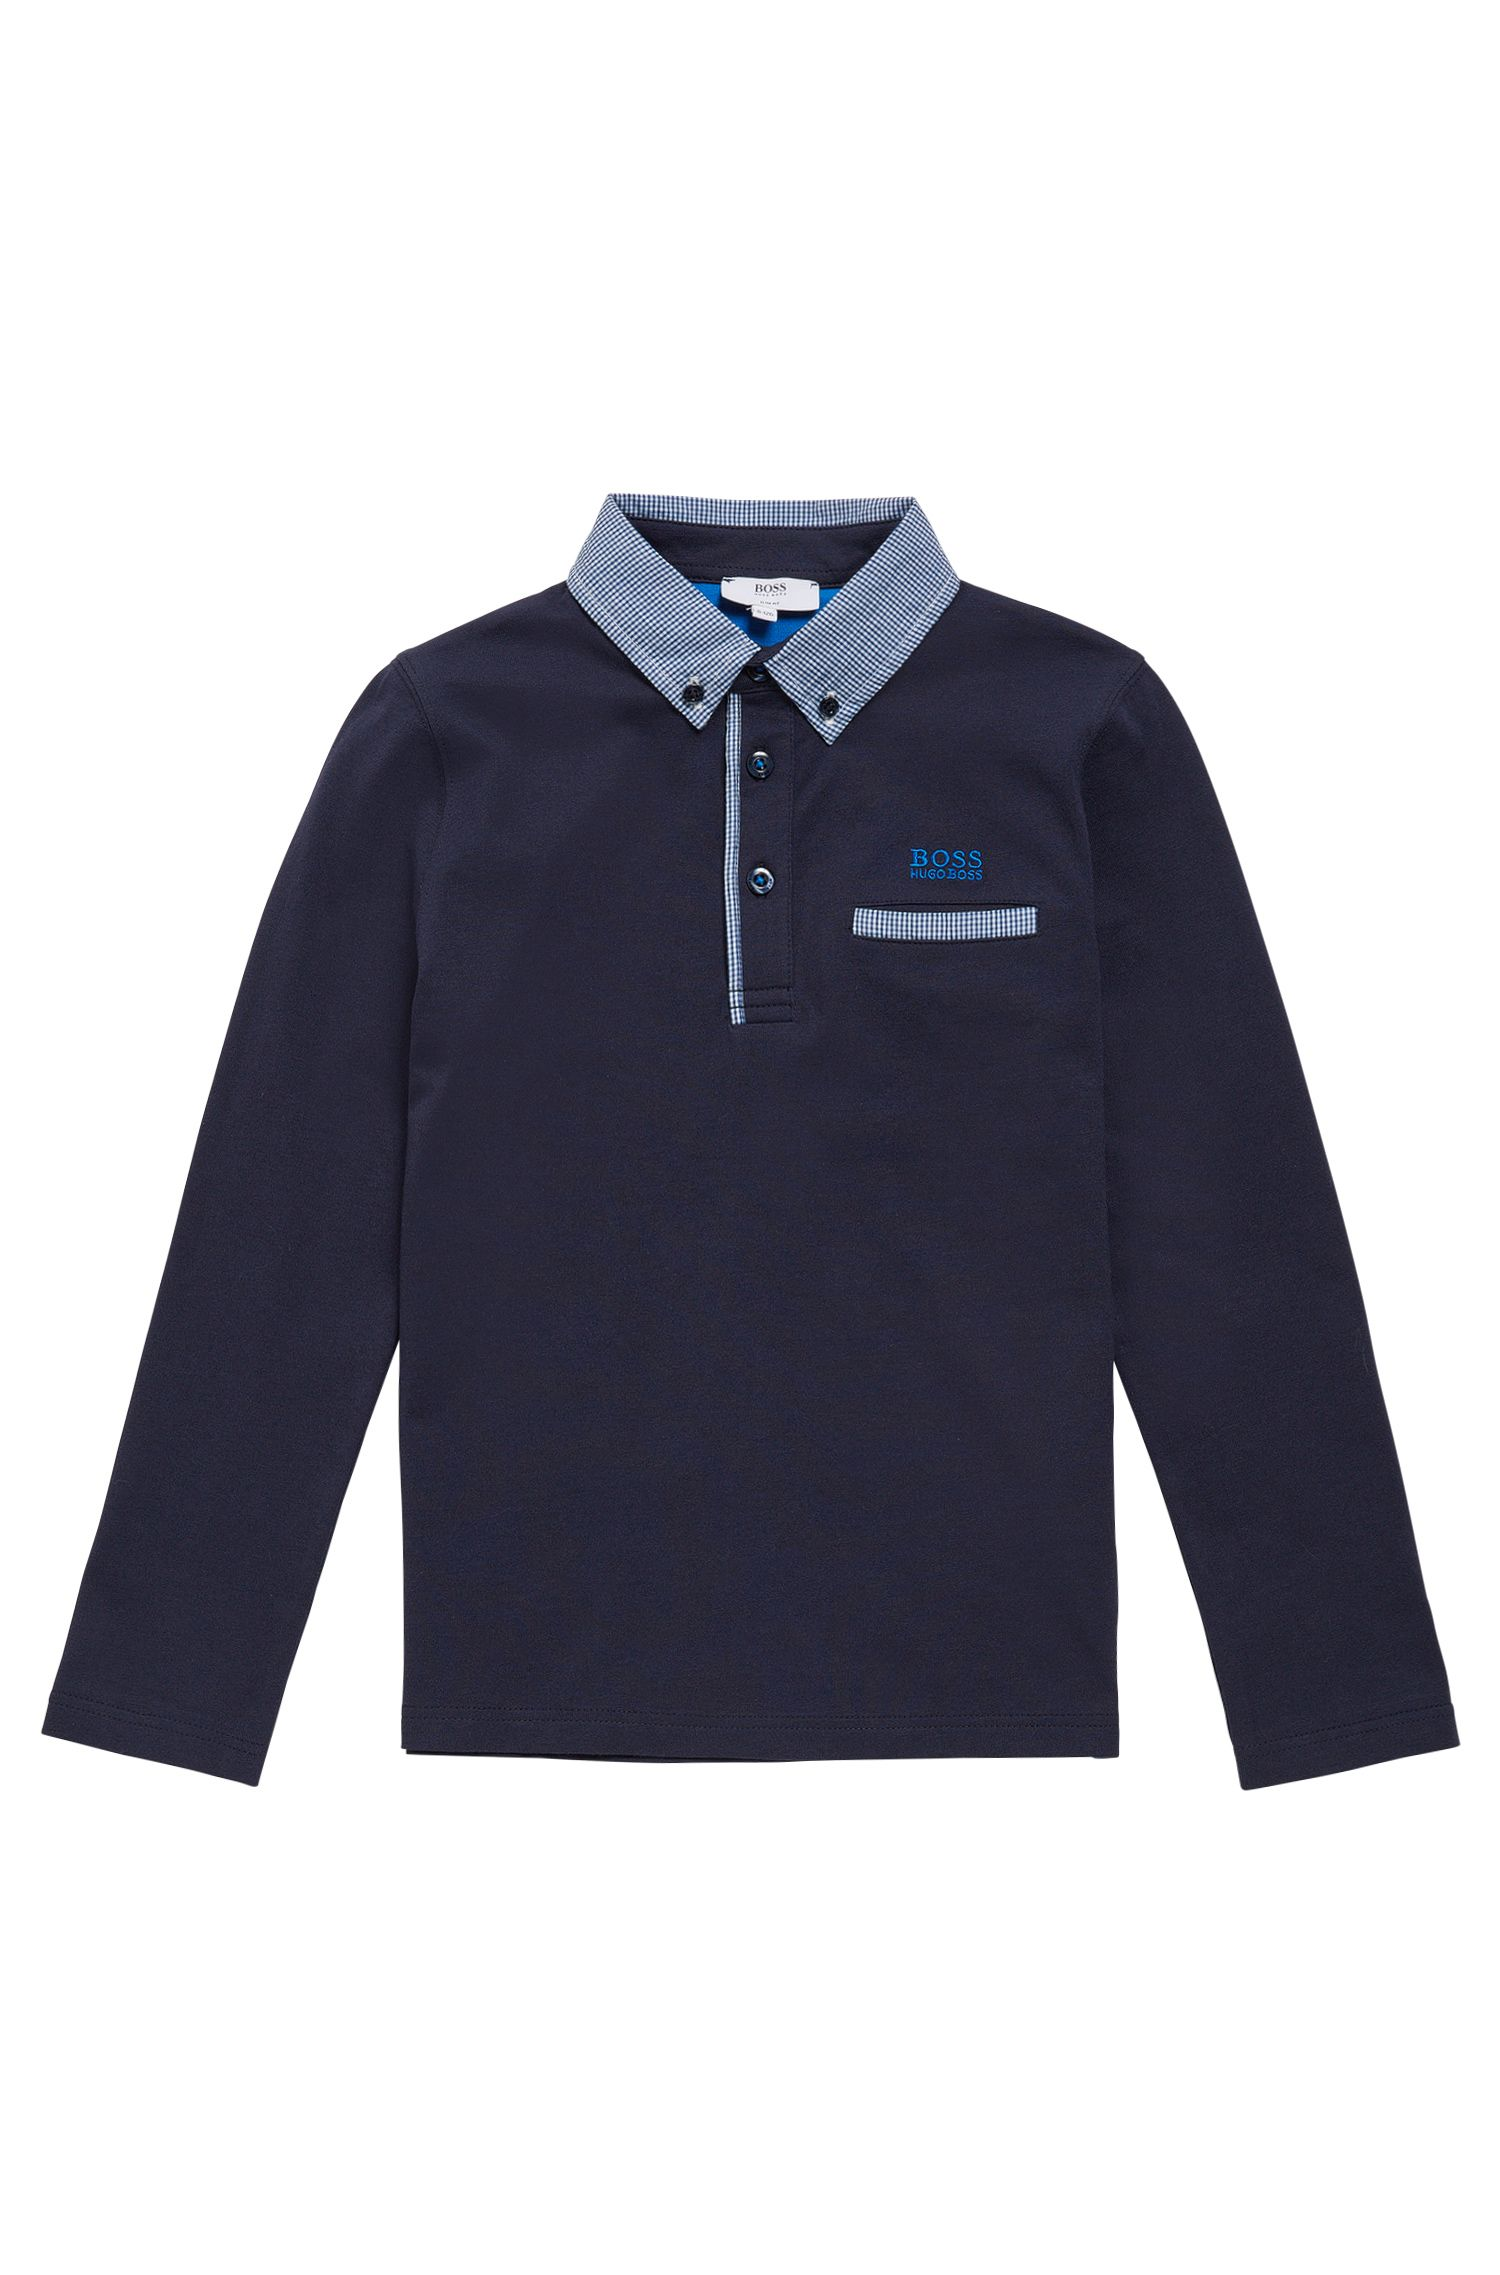 'J25993' | Boys Cotton Polo Shirt